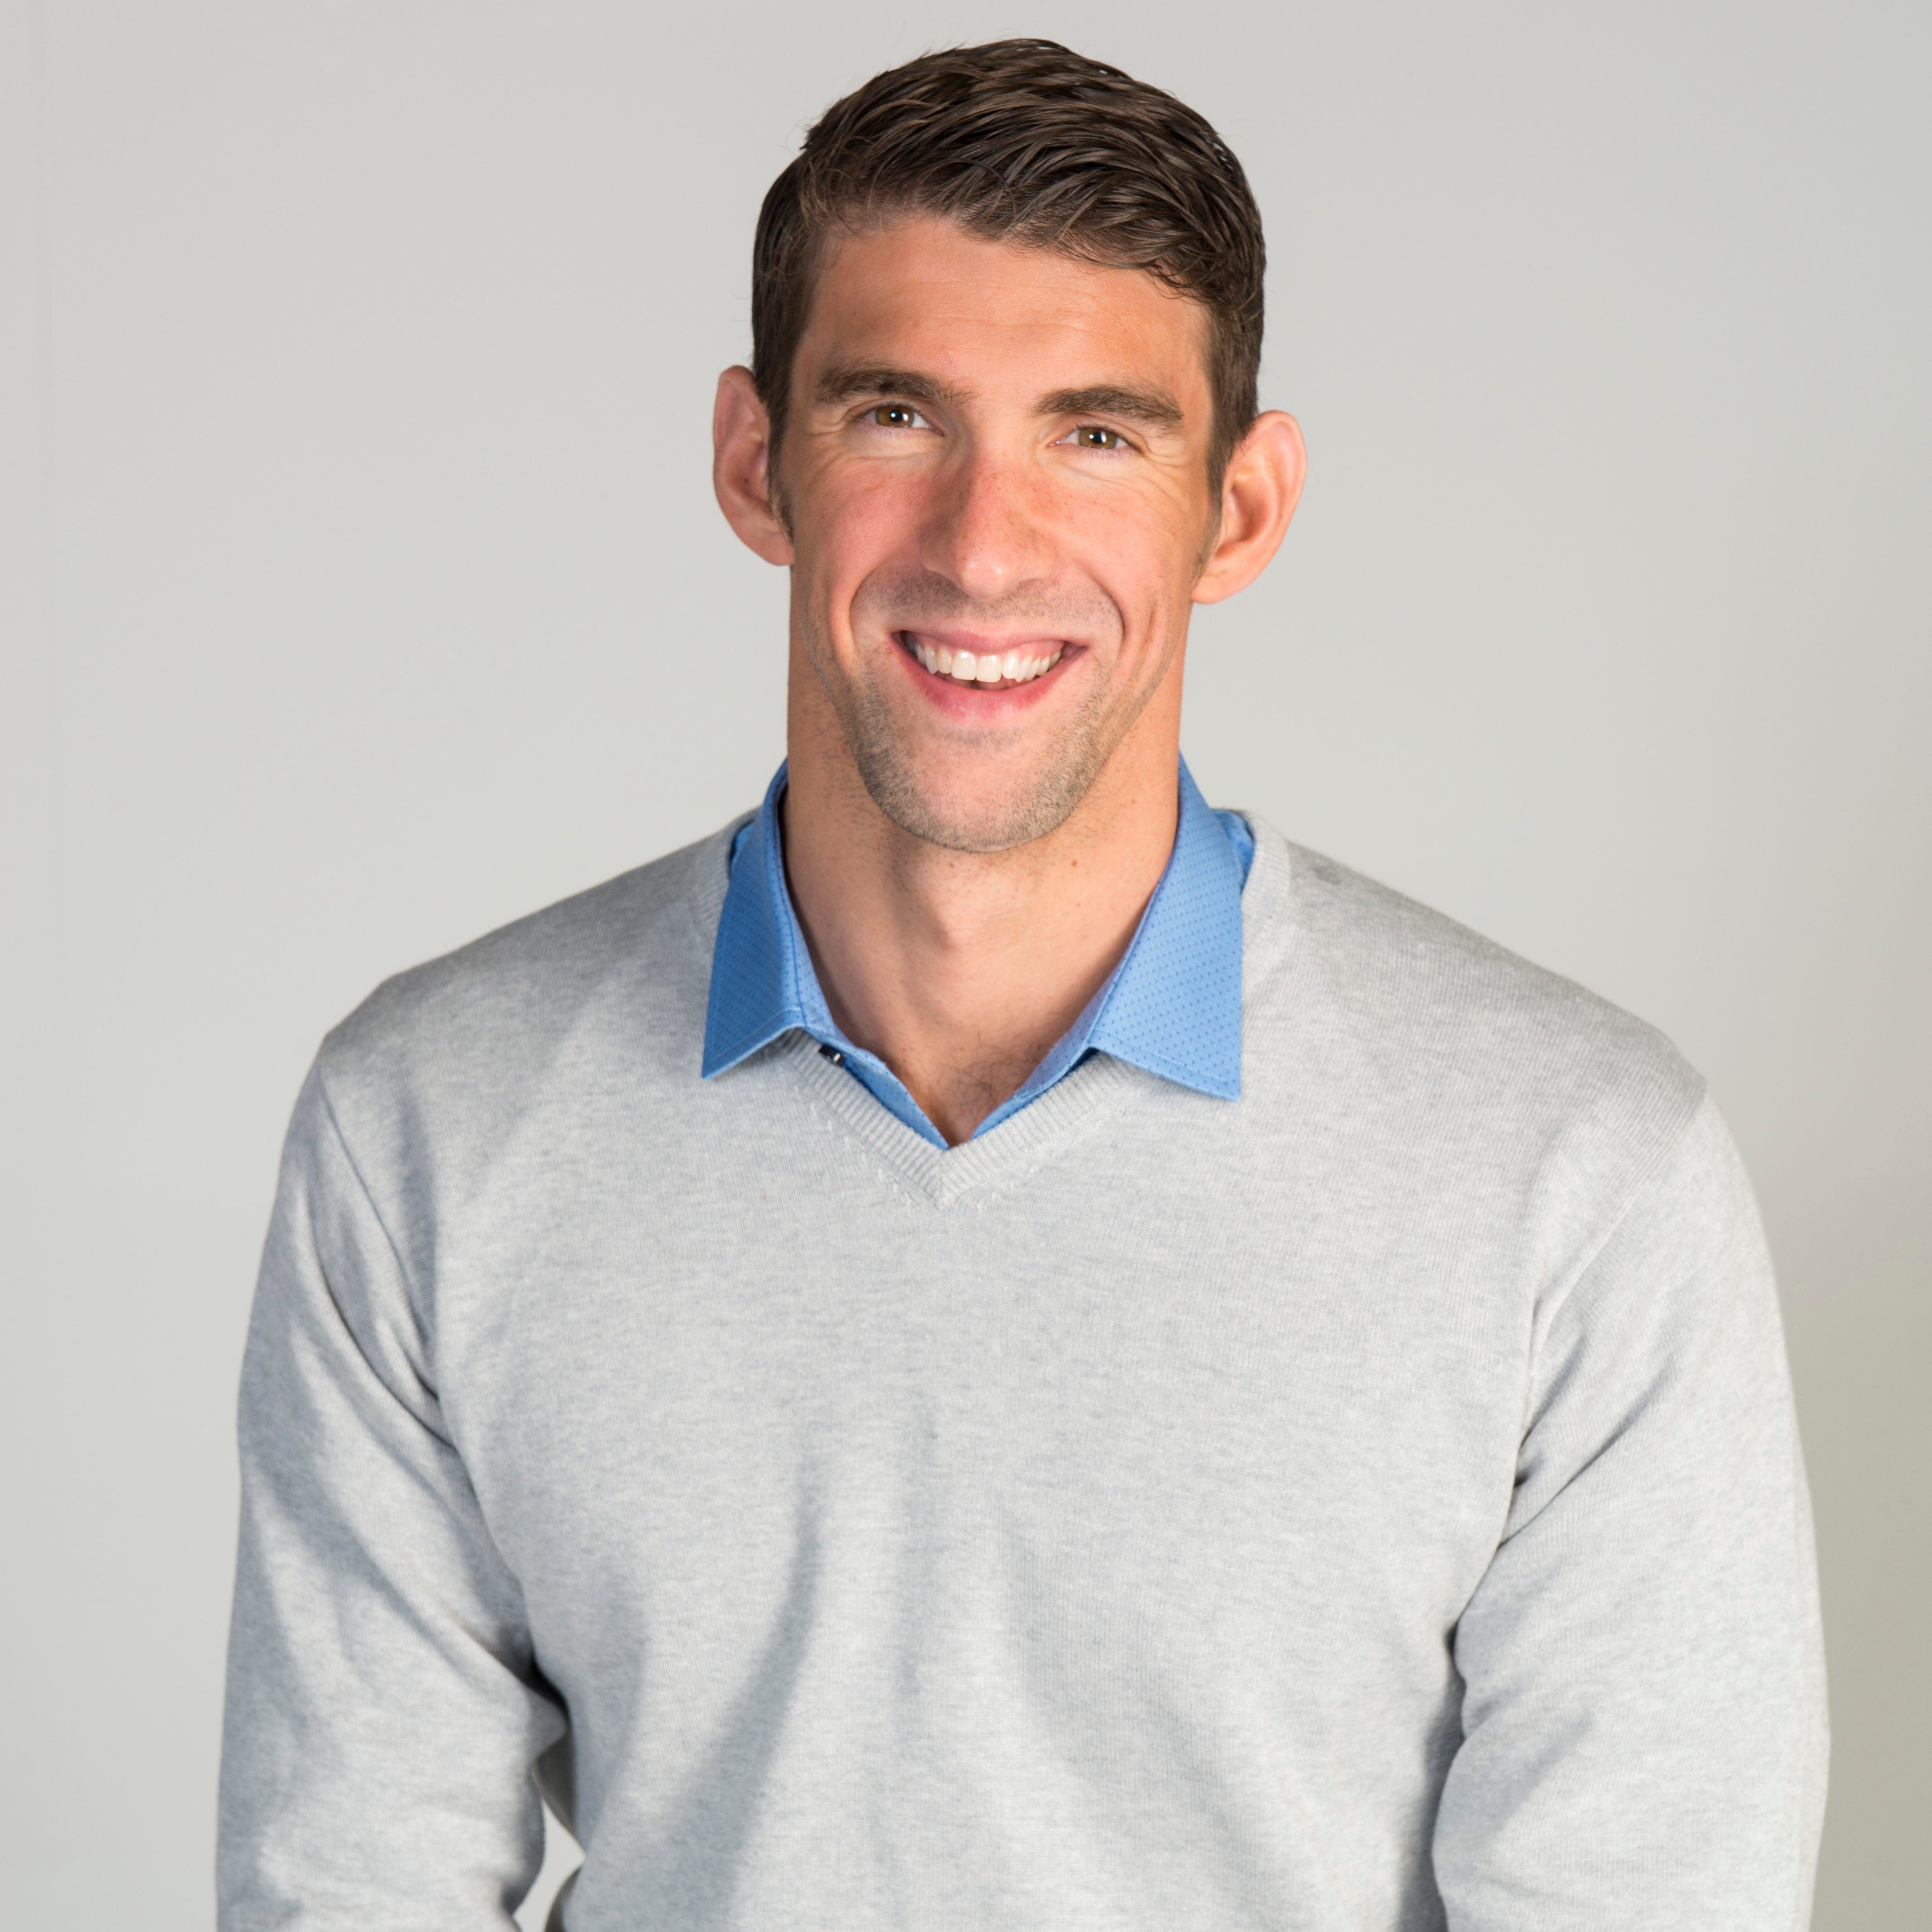 Olympic swimming legend Michael Phelps to appear at Wisconsin High School Sports Awards